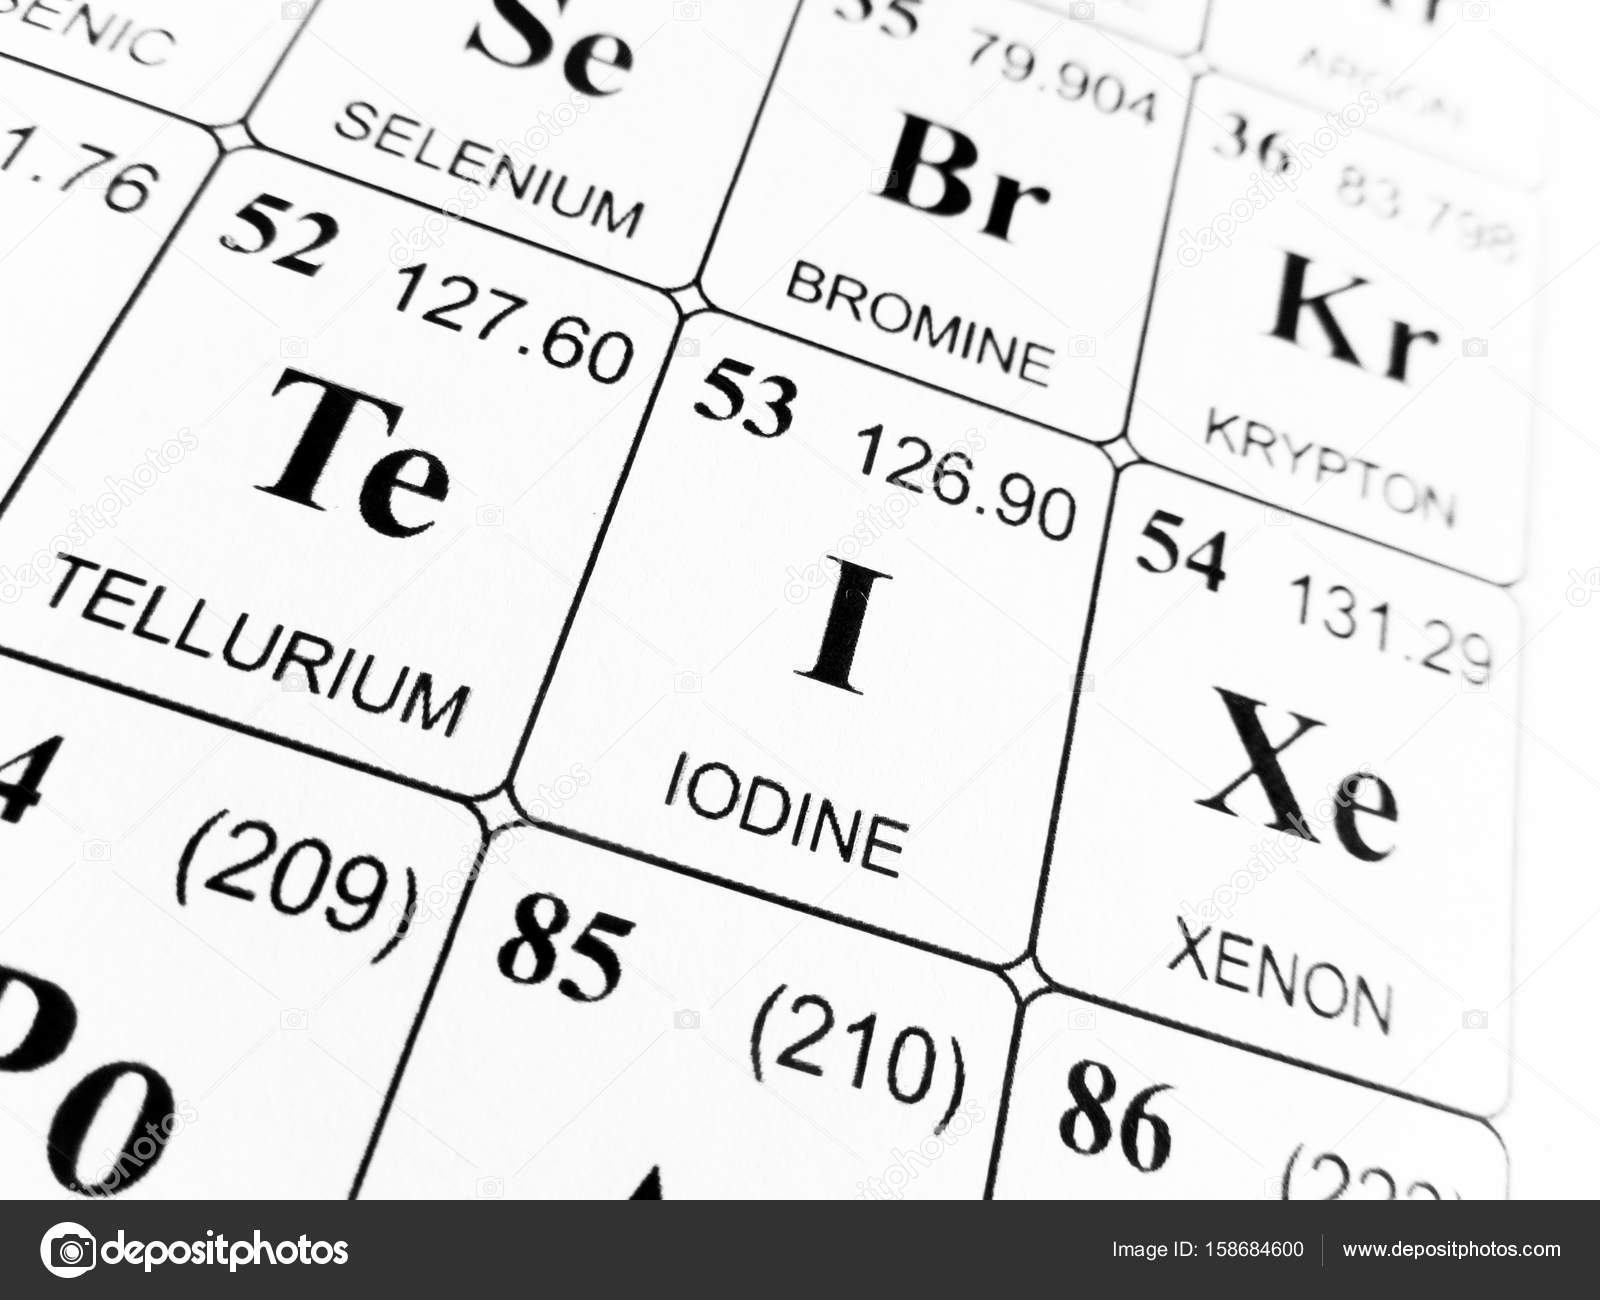 Iodine on the periodic table of the elements stock photo iodine on the periodic table of the elements stock photo urtaz Choice Image